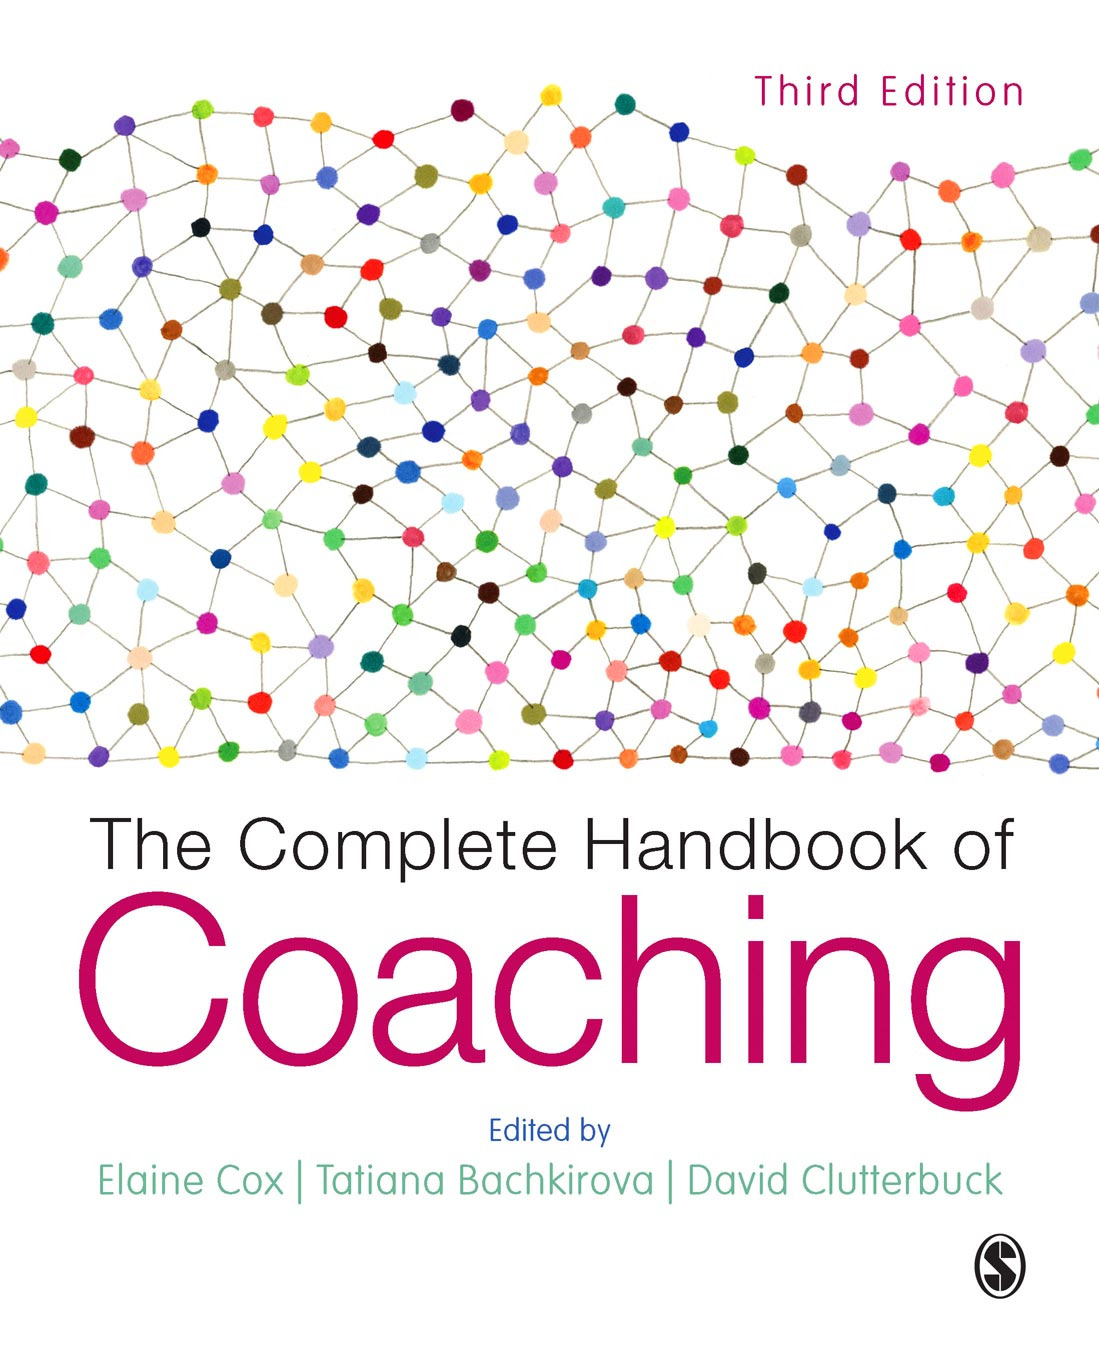 The Complete Handbook of Coaching book cover image